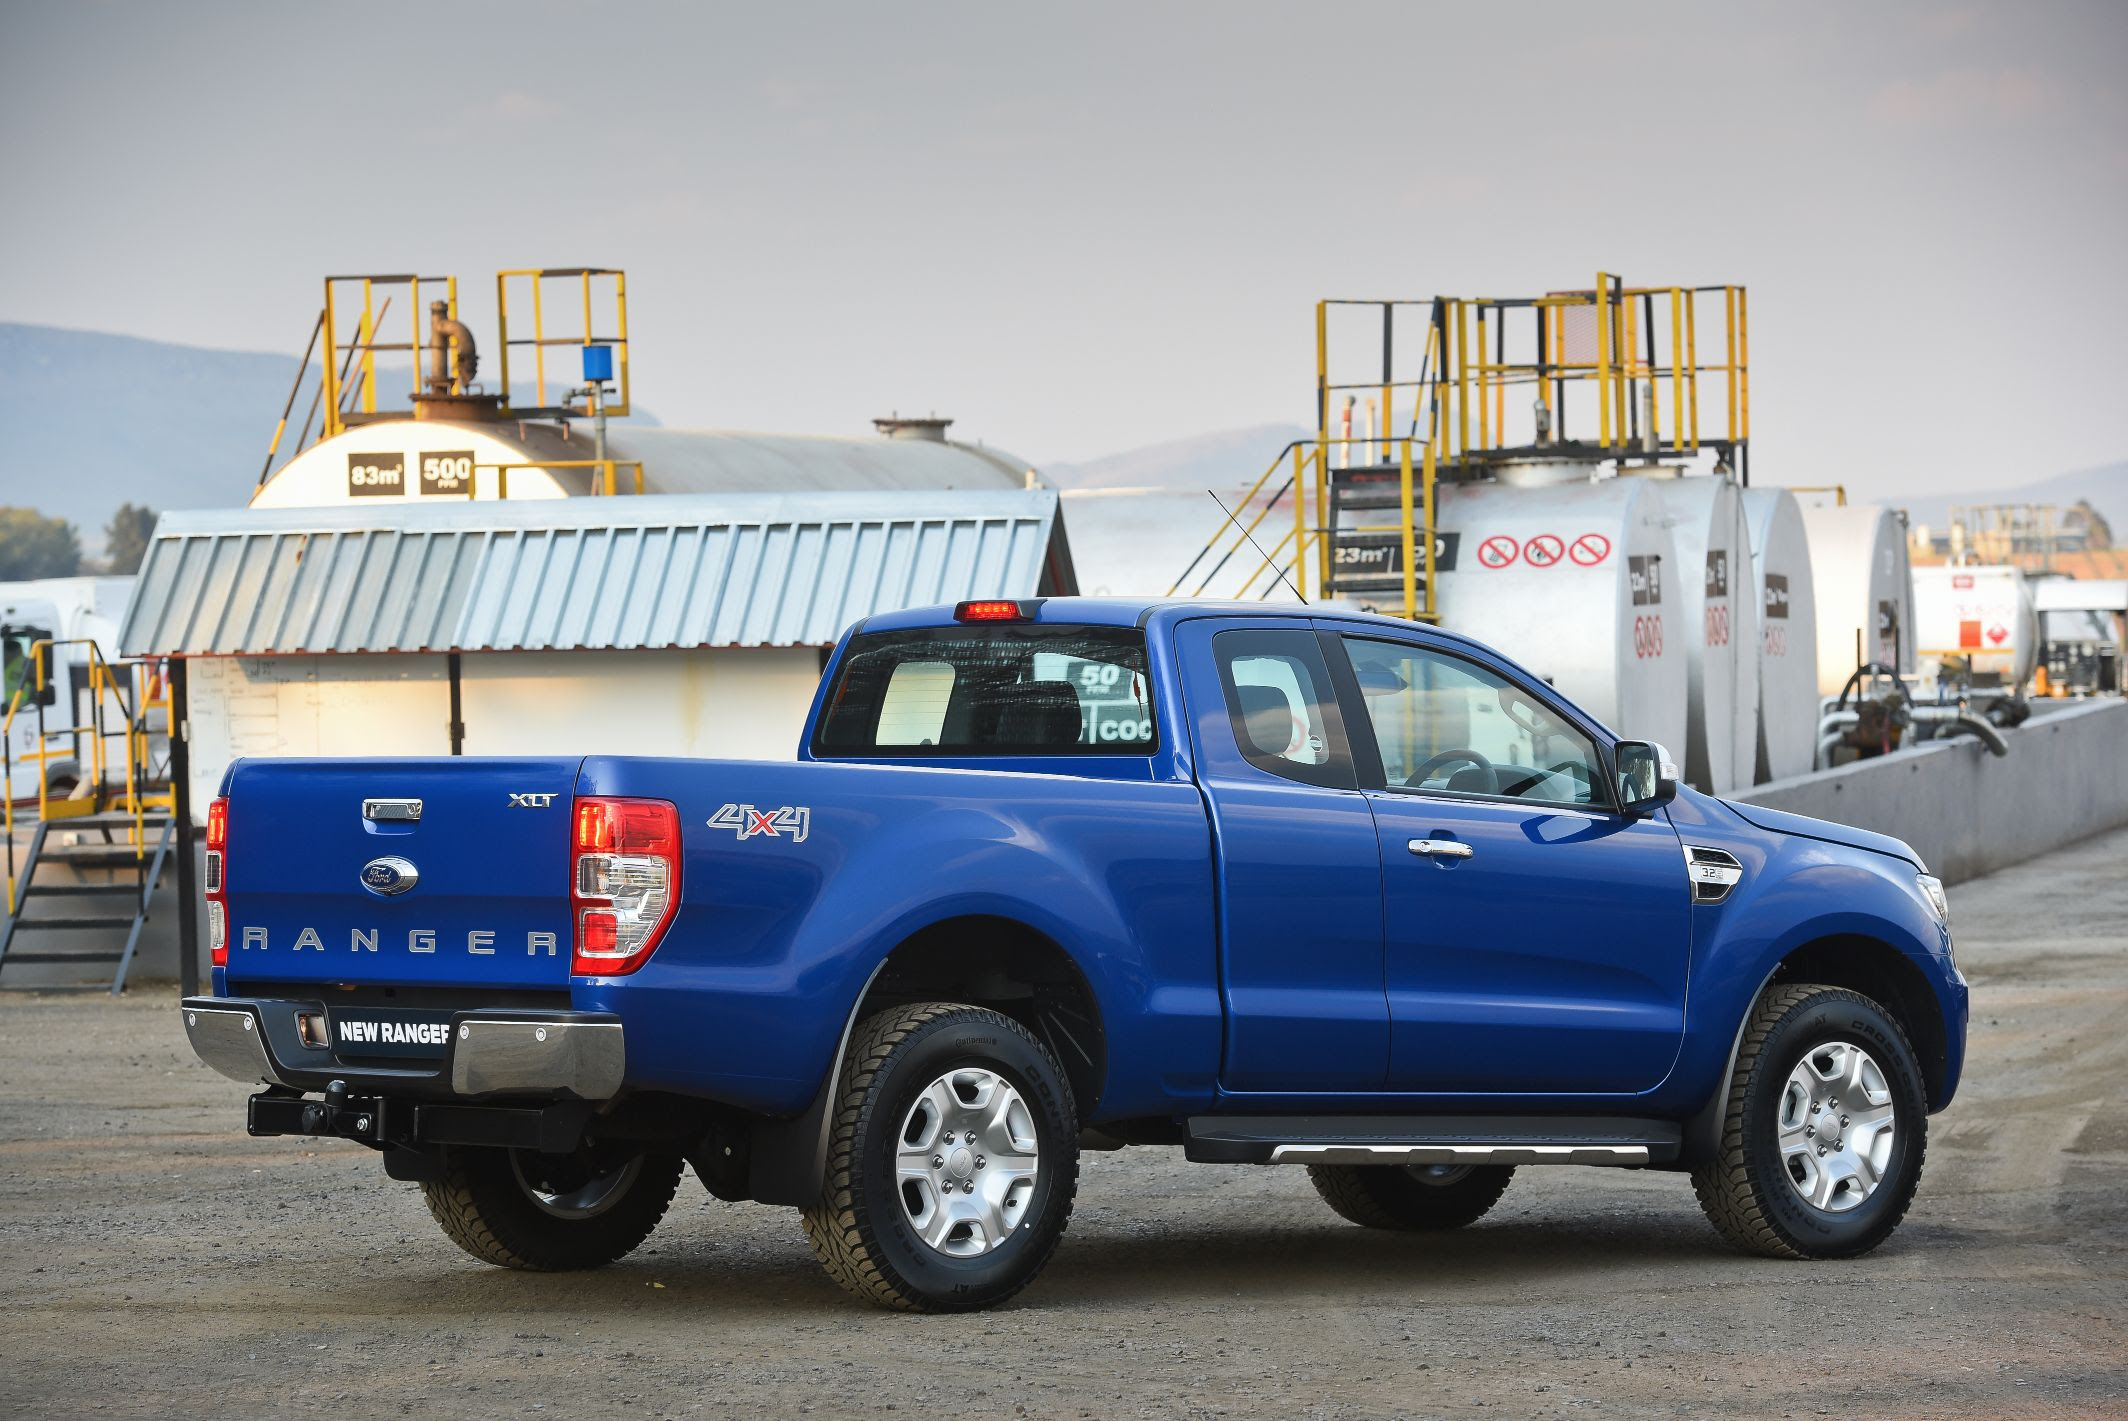 Ford Ranger Us 2017 Ford Ranger Usa 2017 Ford Ranger Usa Price | 2016 ...